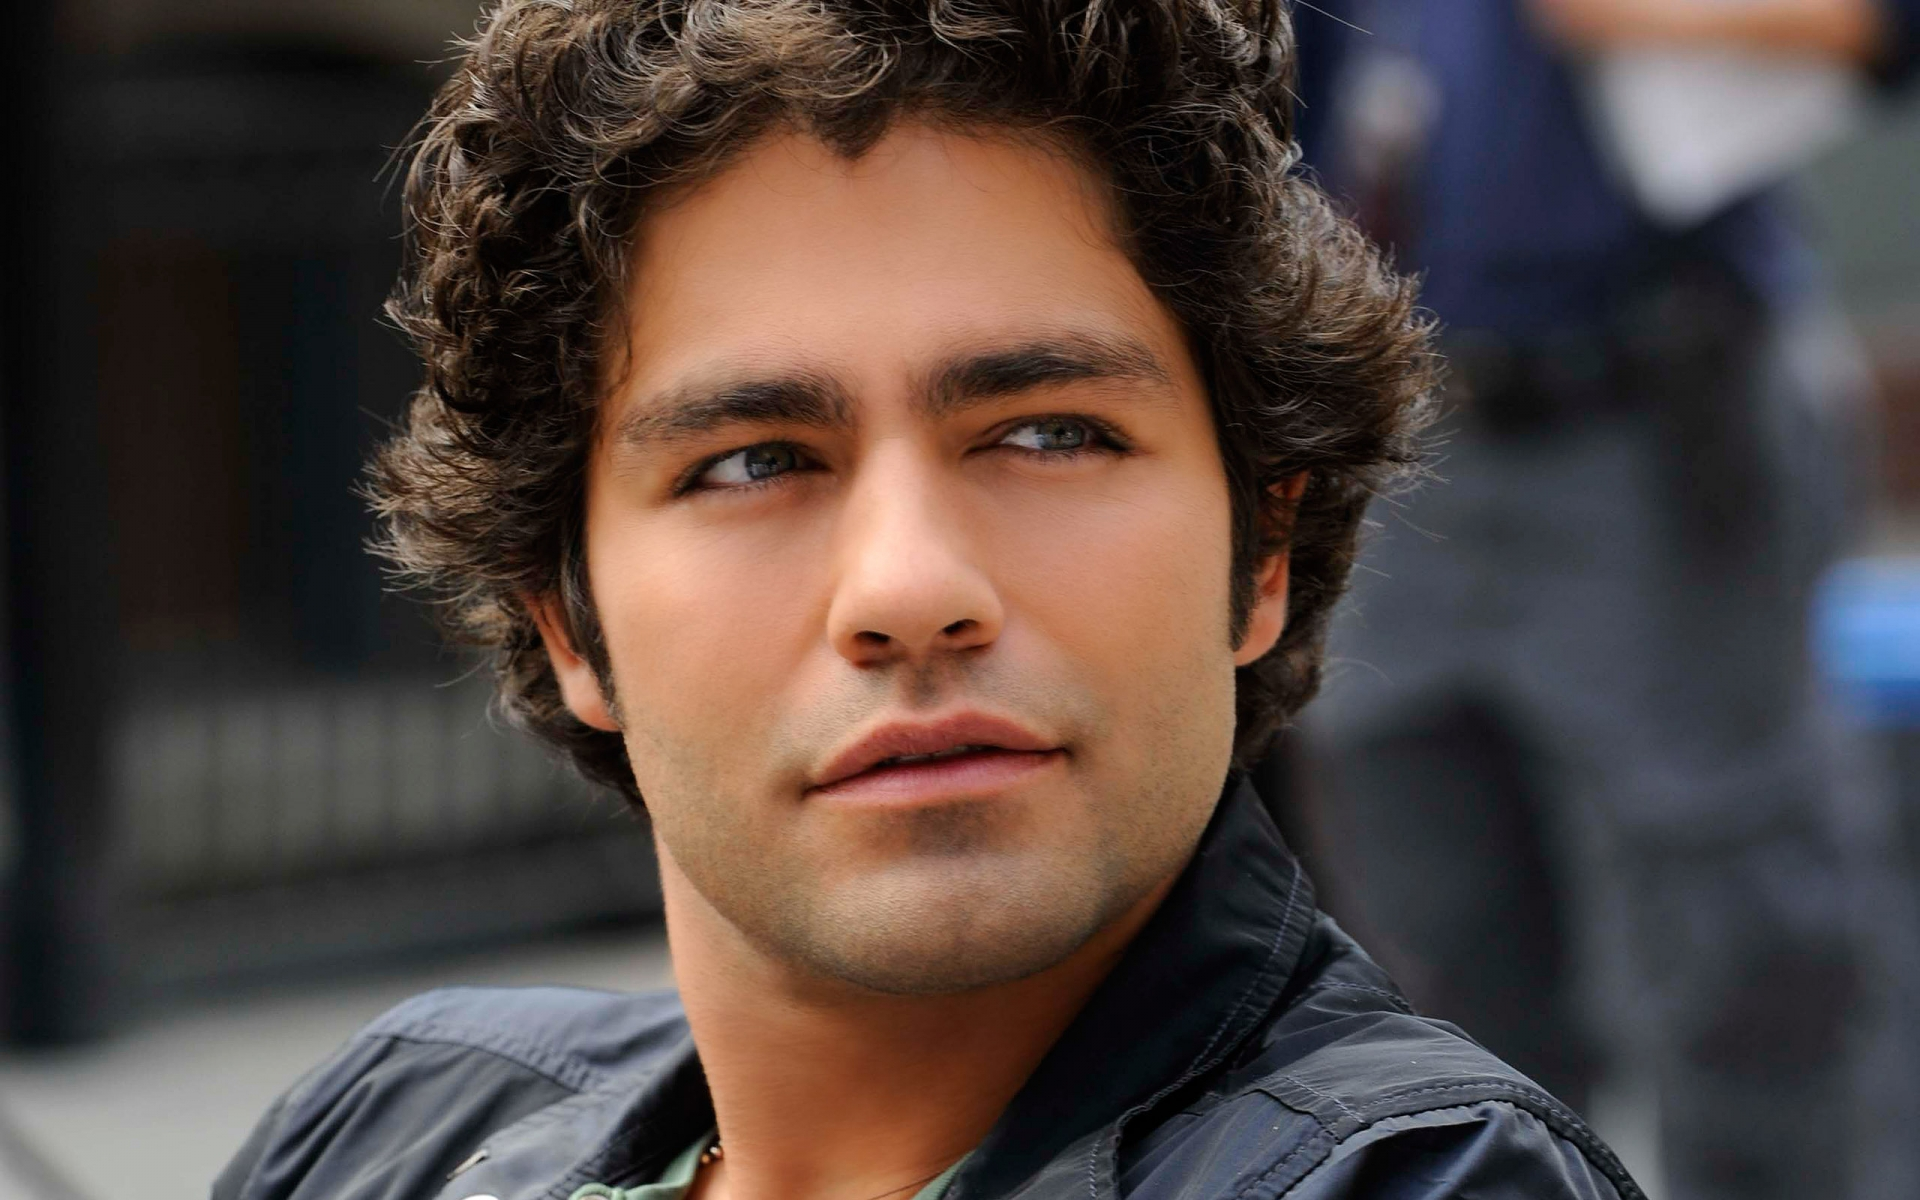 Adrian Grenier for 1920 x 1200 widescreen resolution